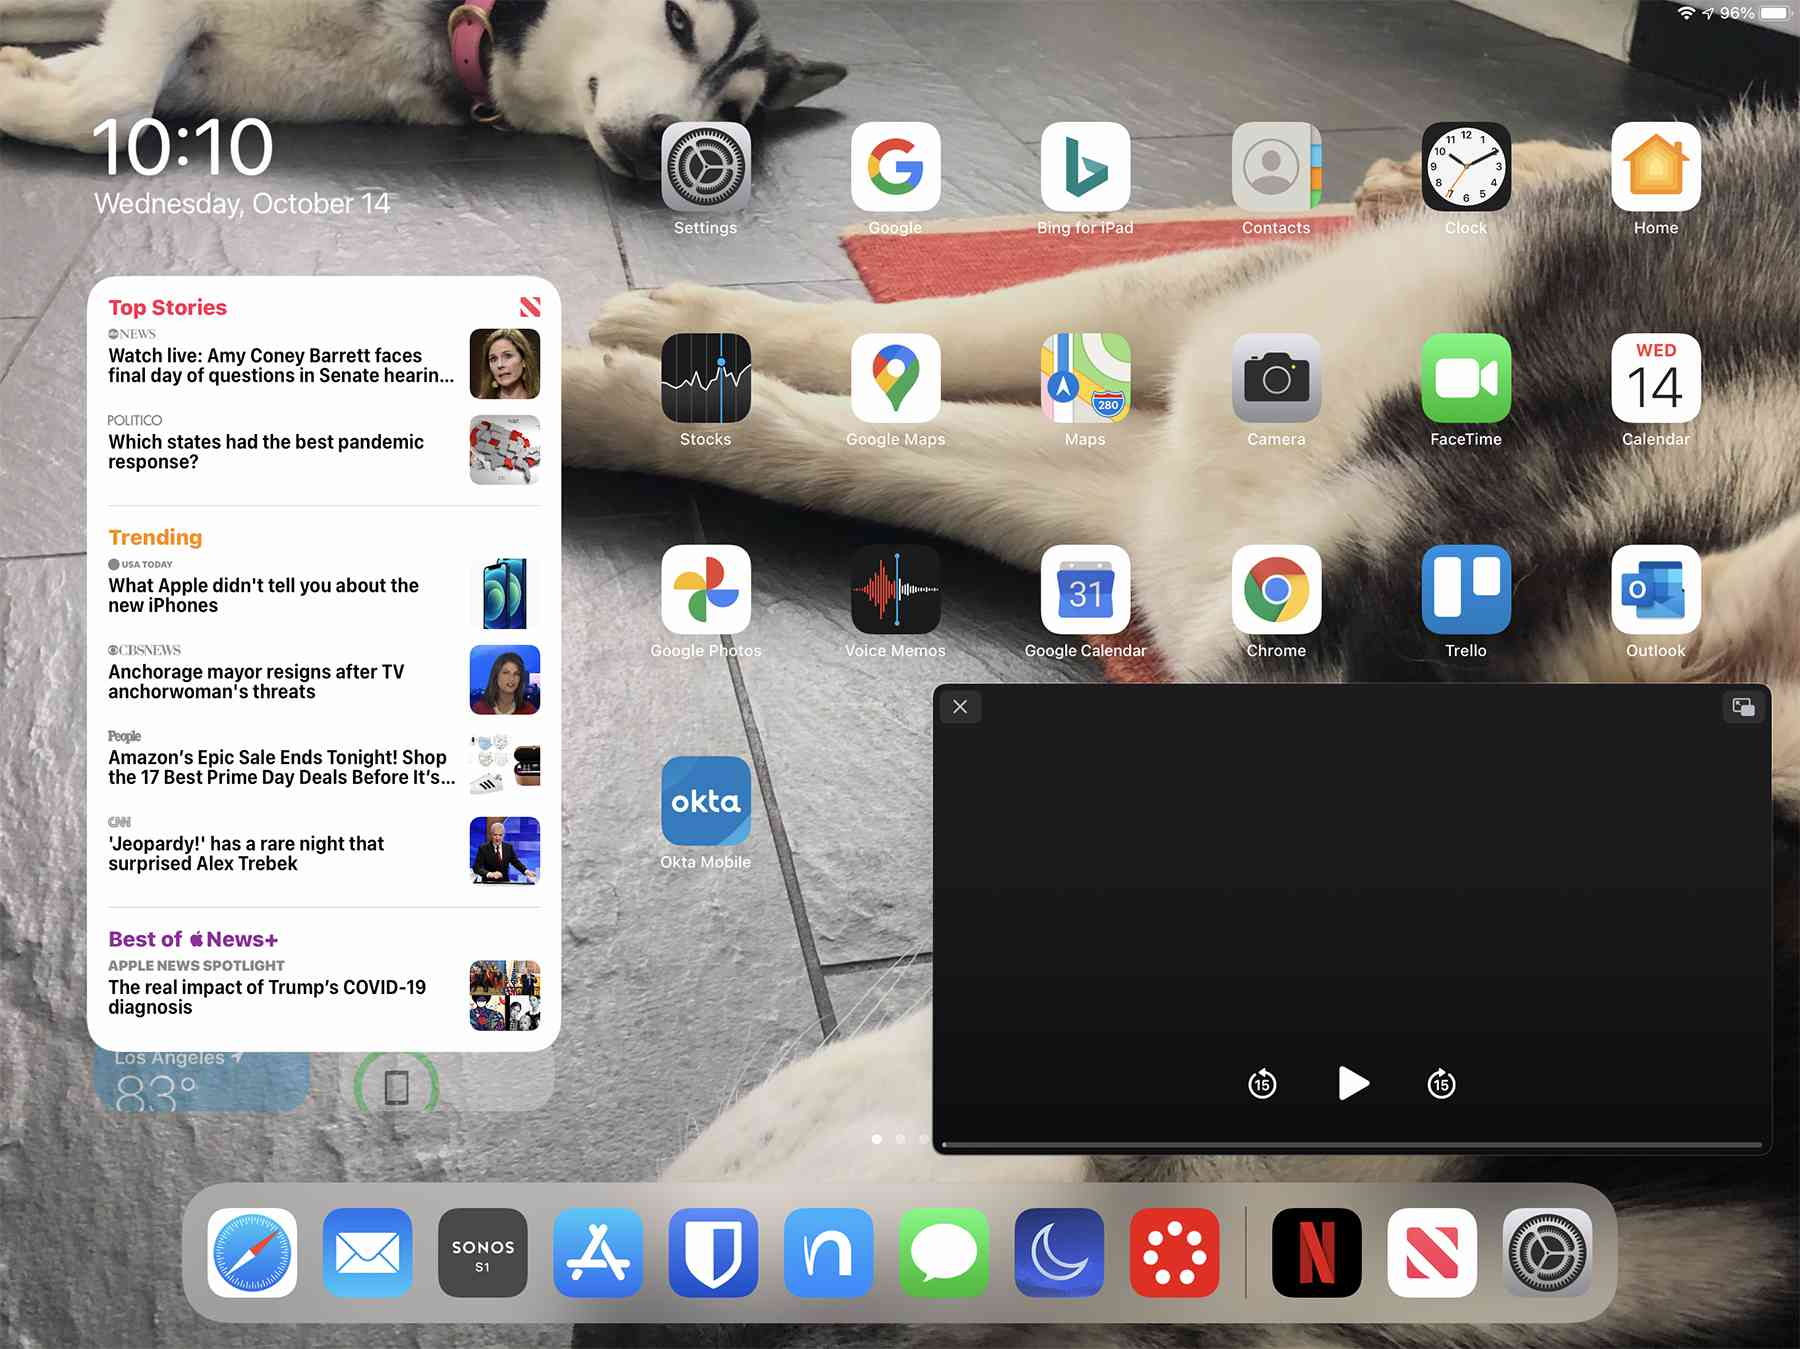 Picture-in-picture on the iPad Home screen